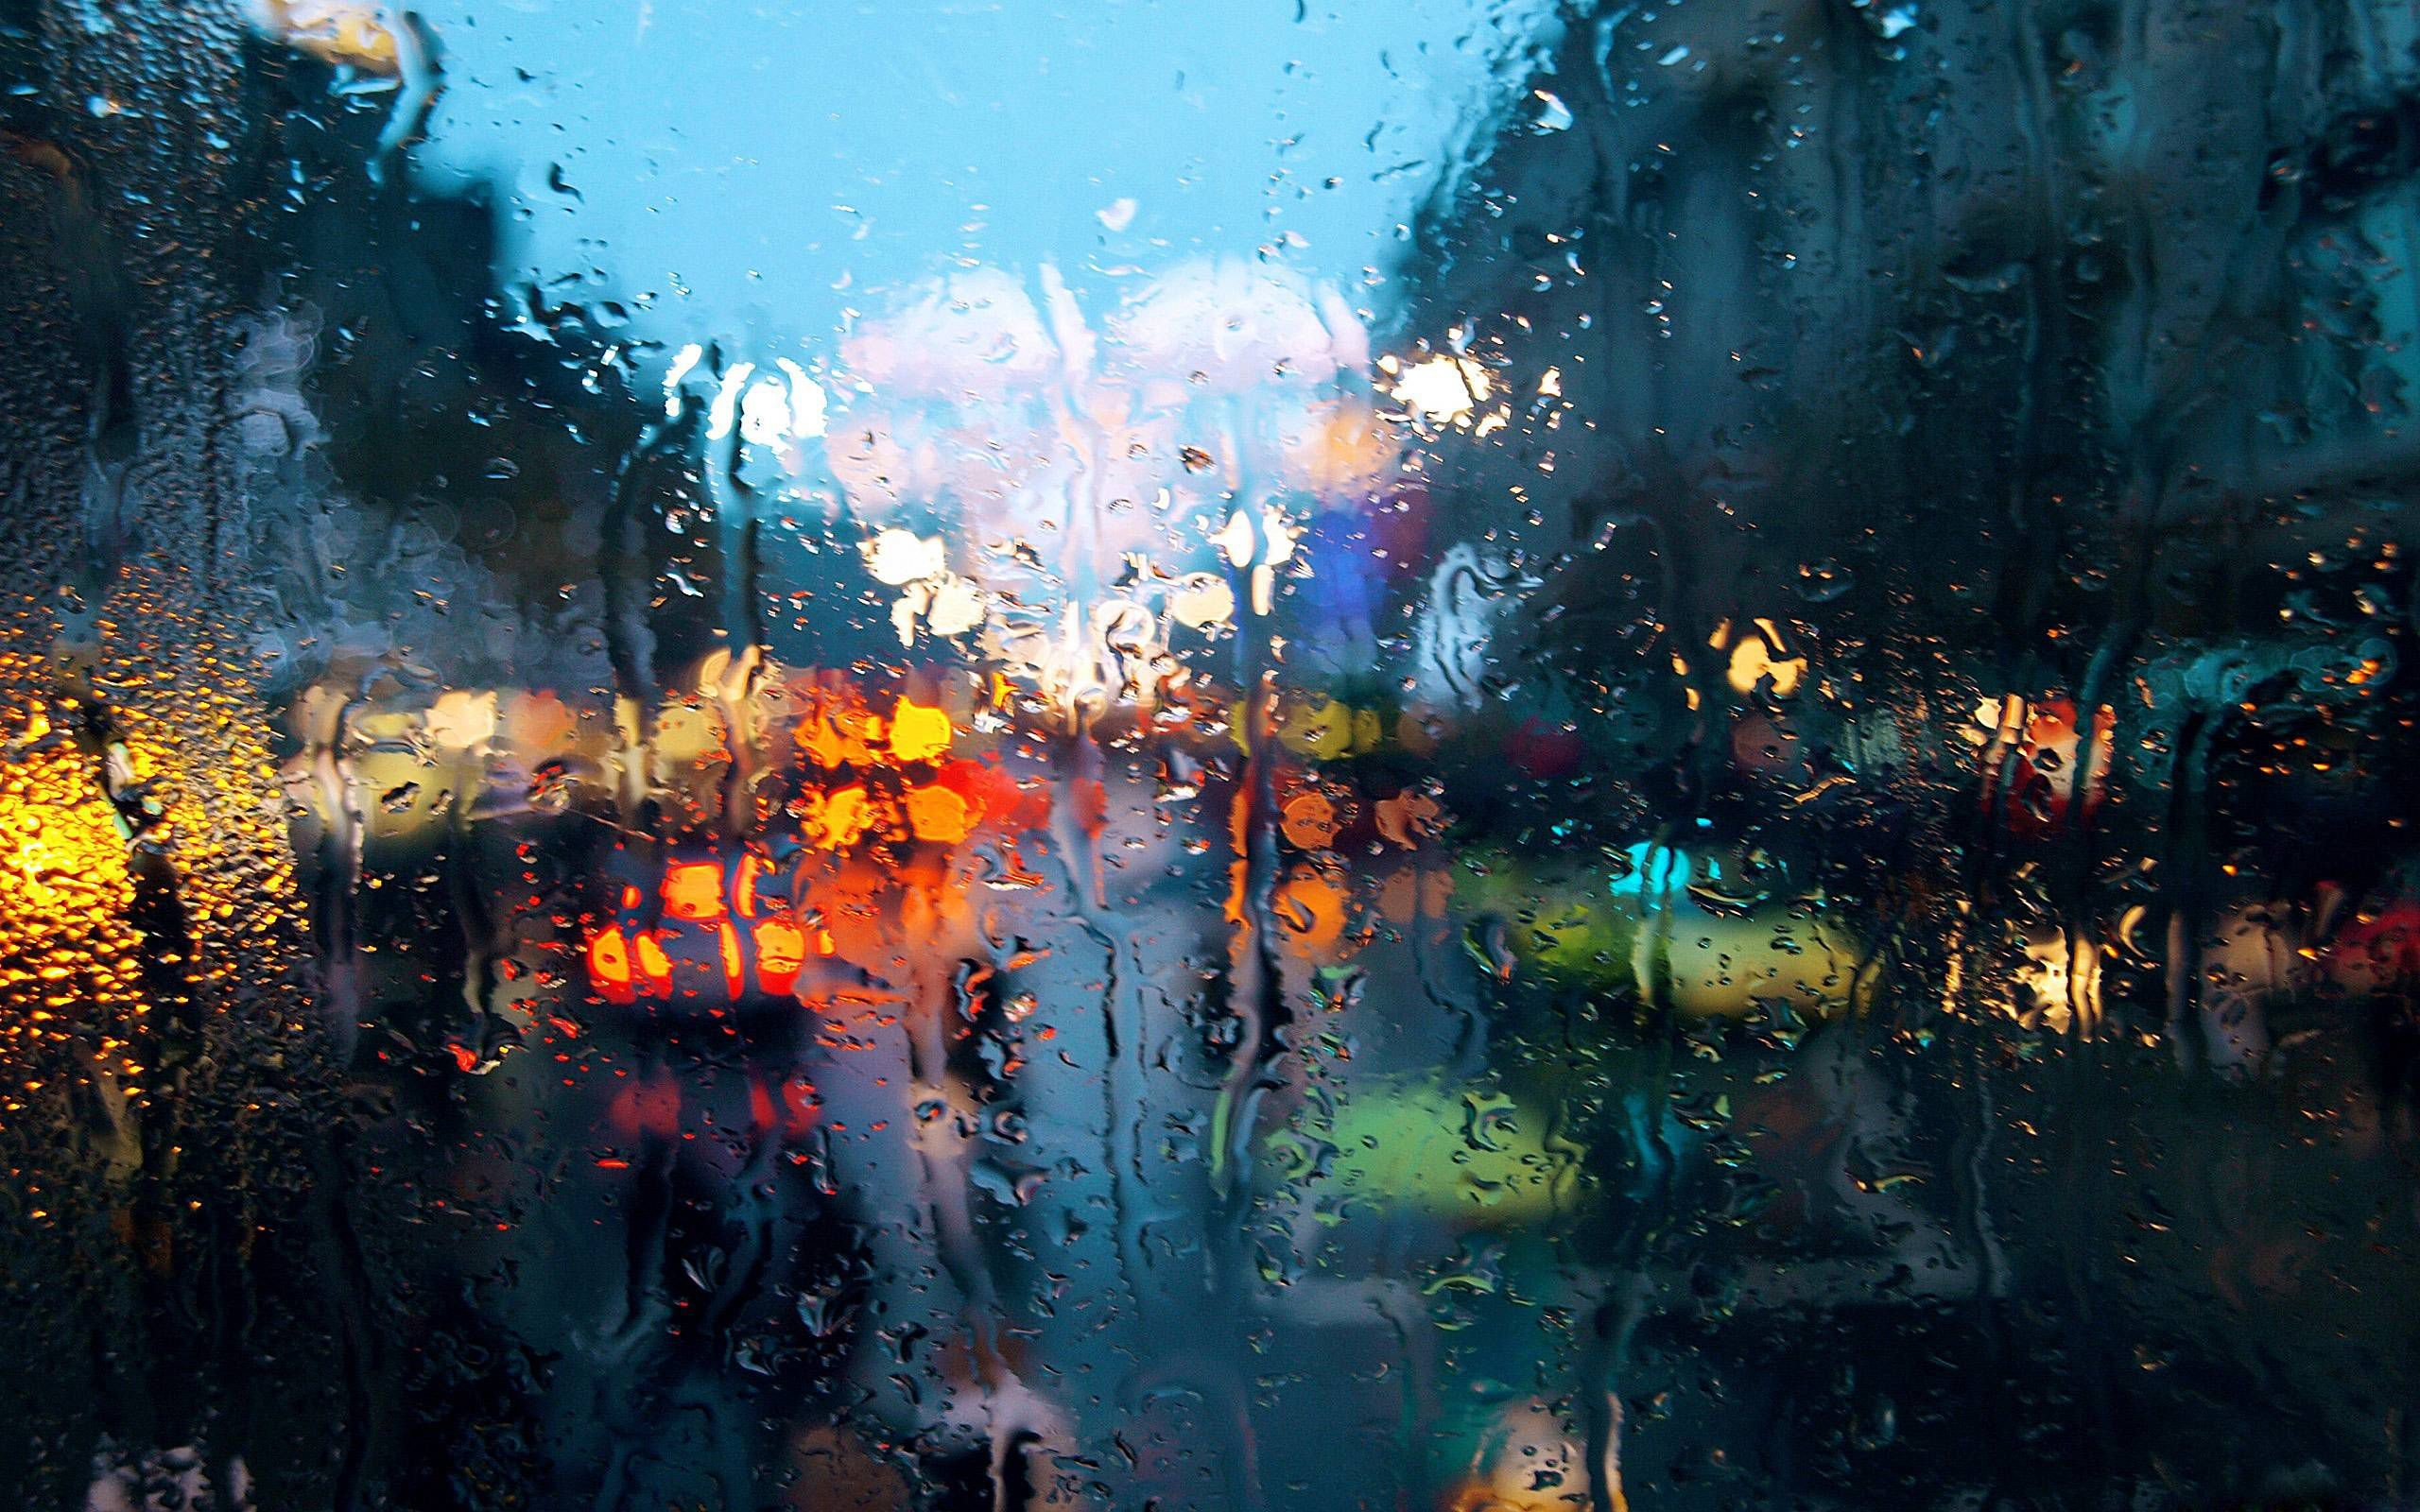 2560x1600 Sad Rain Wallpaper Images #zXU